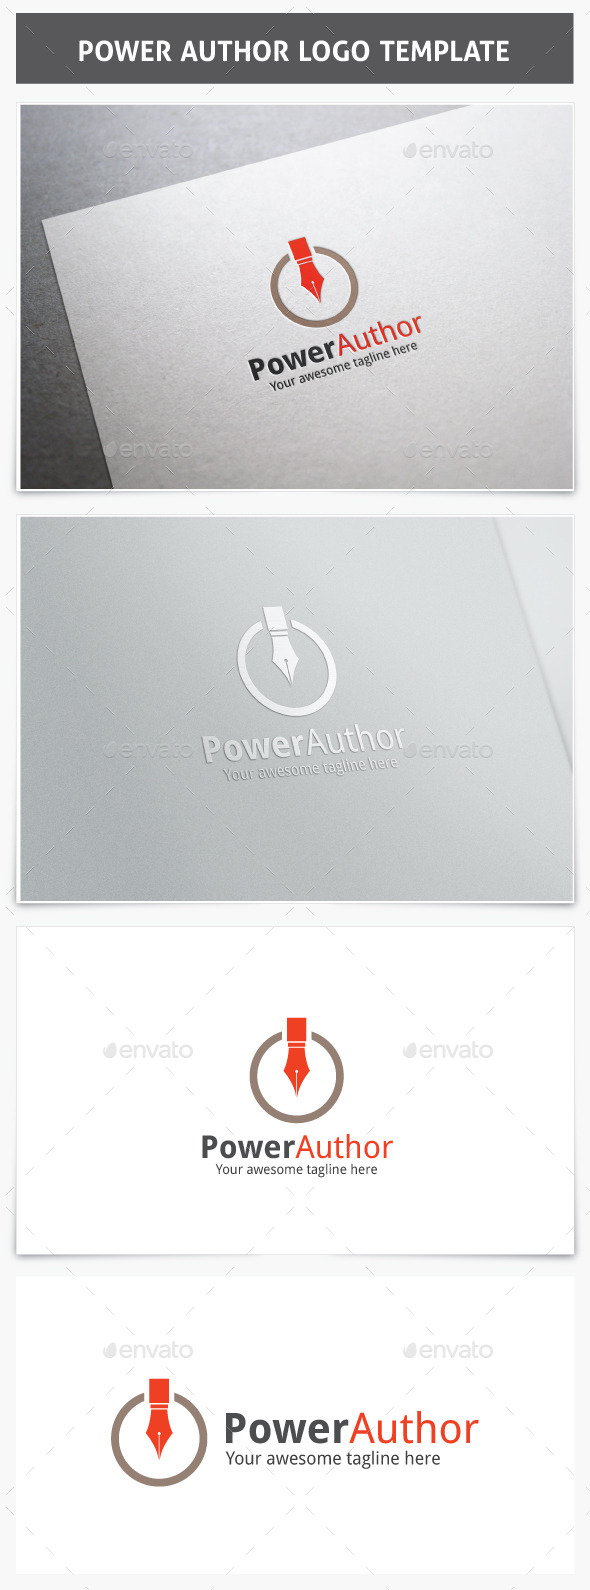 Power Author Logo - Vector Abstract